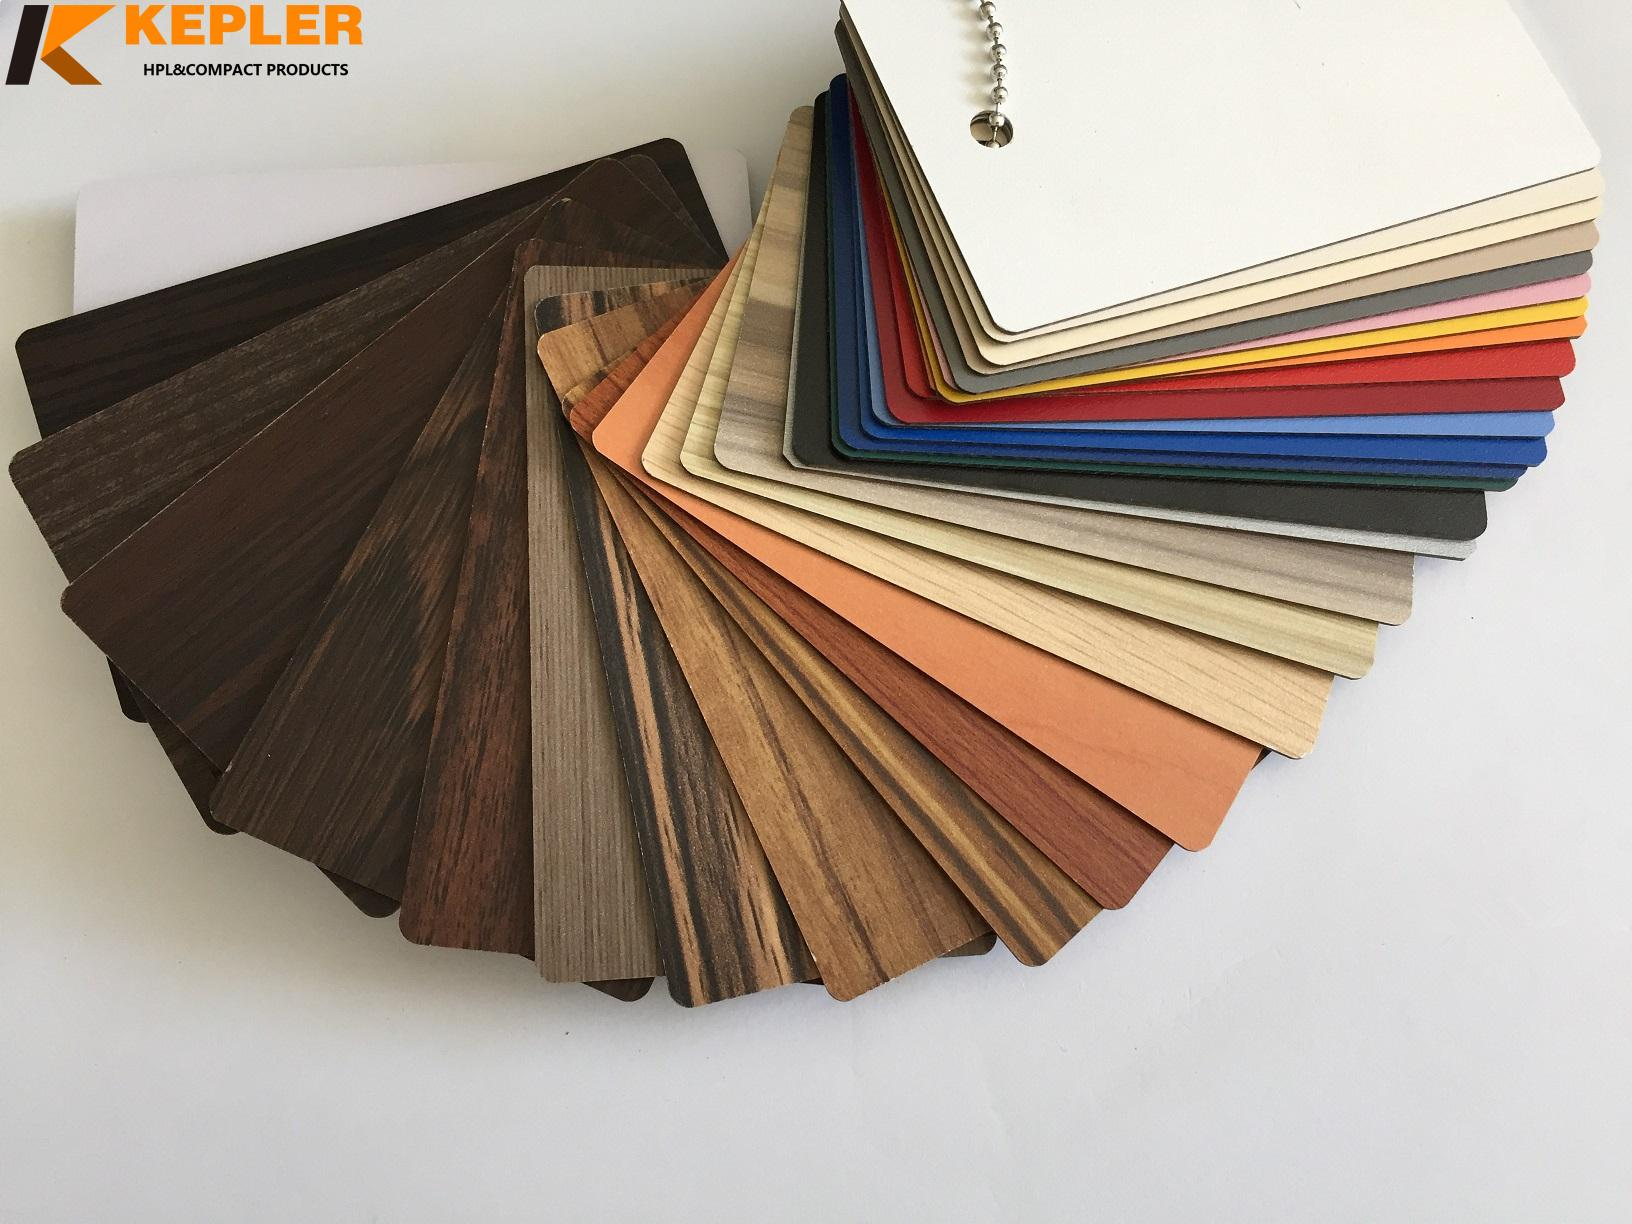 Kepler 8180 decoretive high pressure laminate sheets